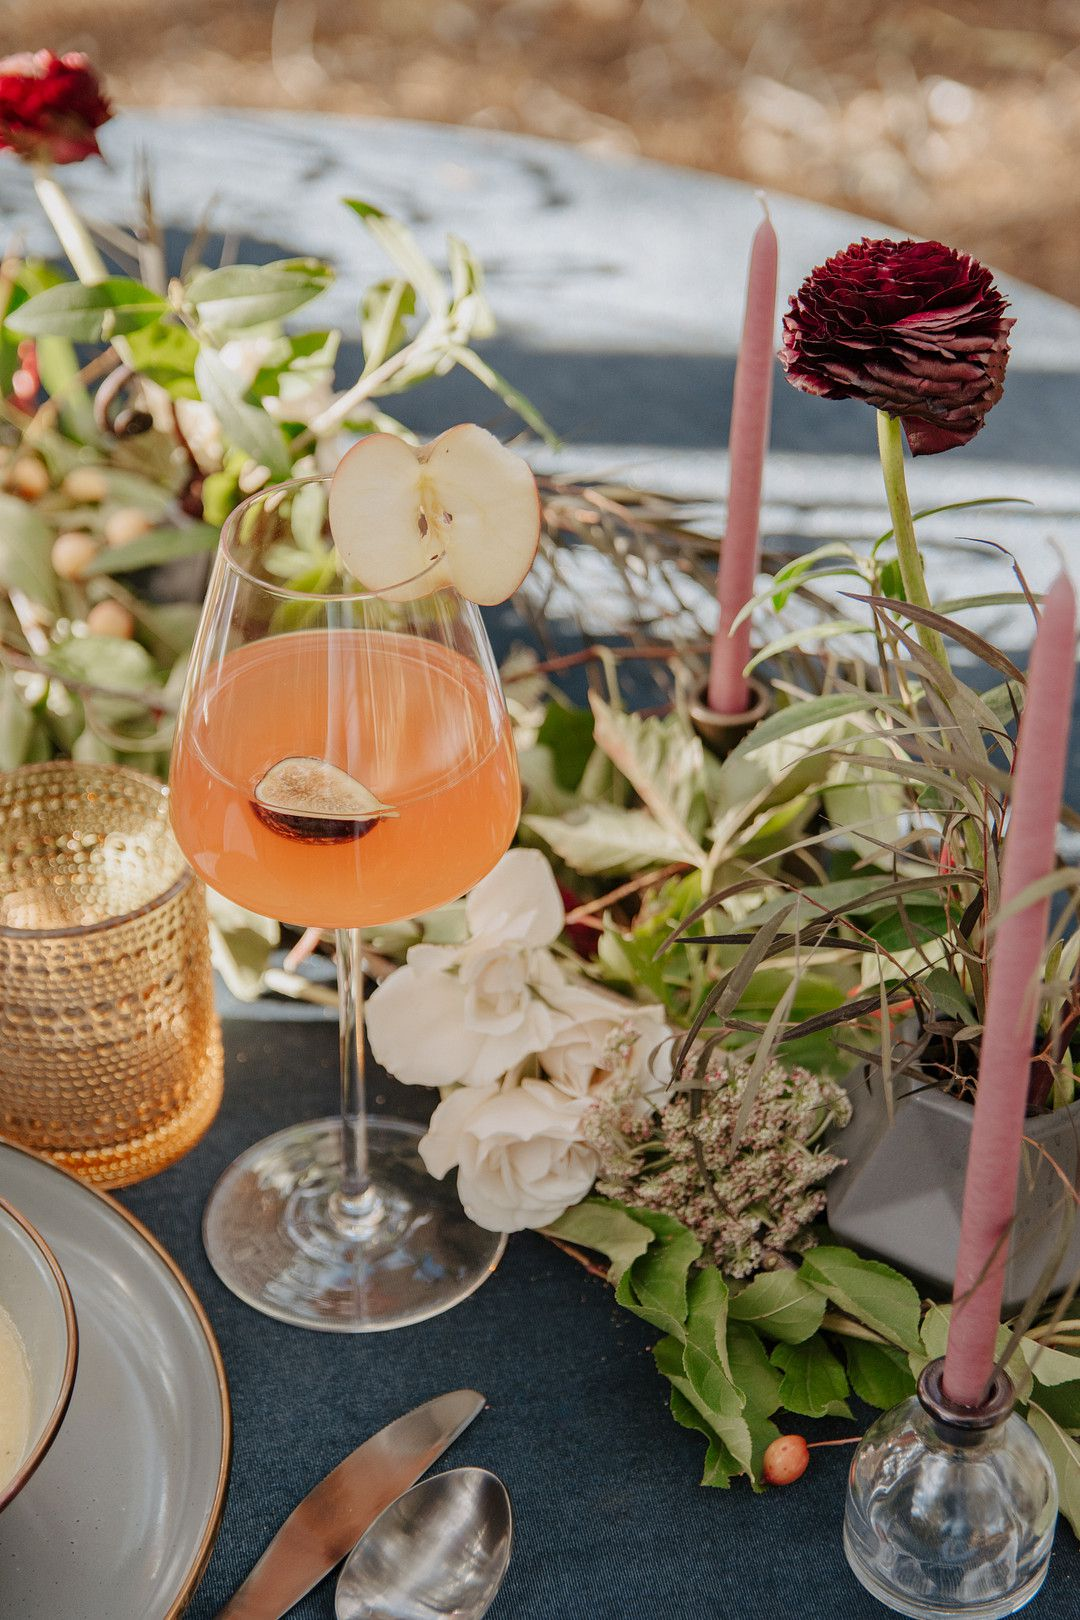 Wedding tablescape with drinks, flowers, and candles